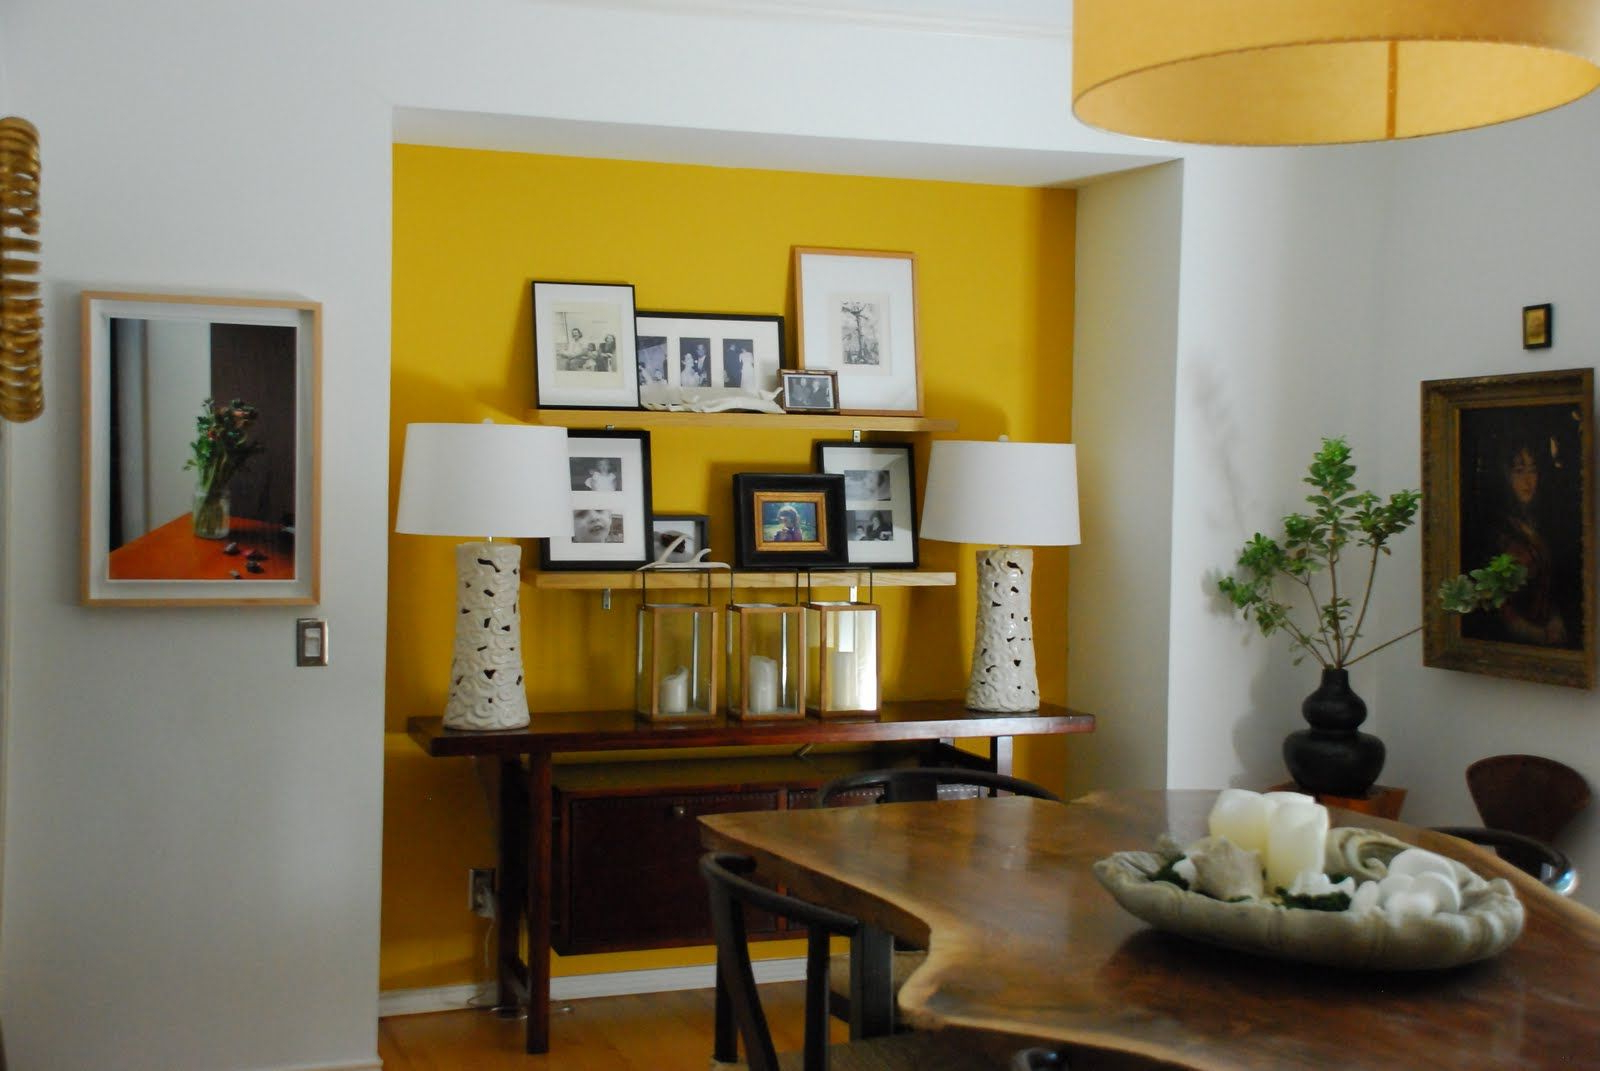 Wall Mirrors Ikea, Lighted Wall Mirror Within Most Popular Yellow Wall Mirrors (View 13 of 20)